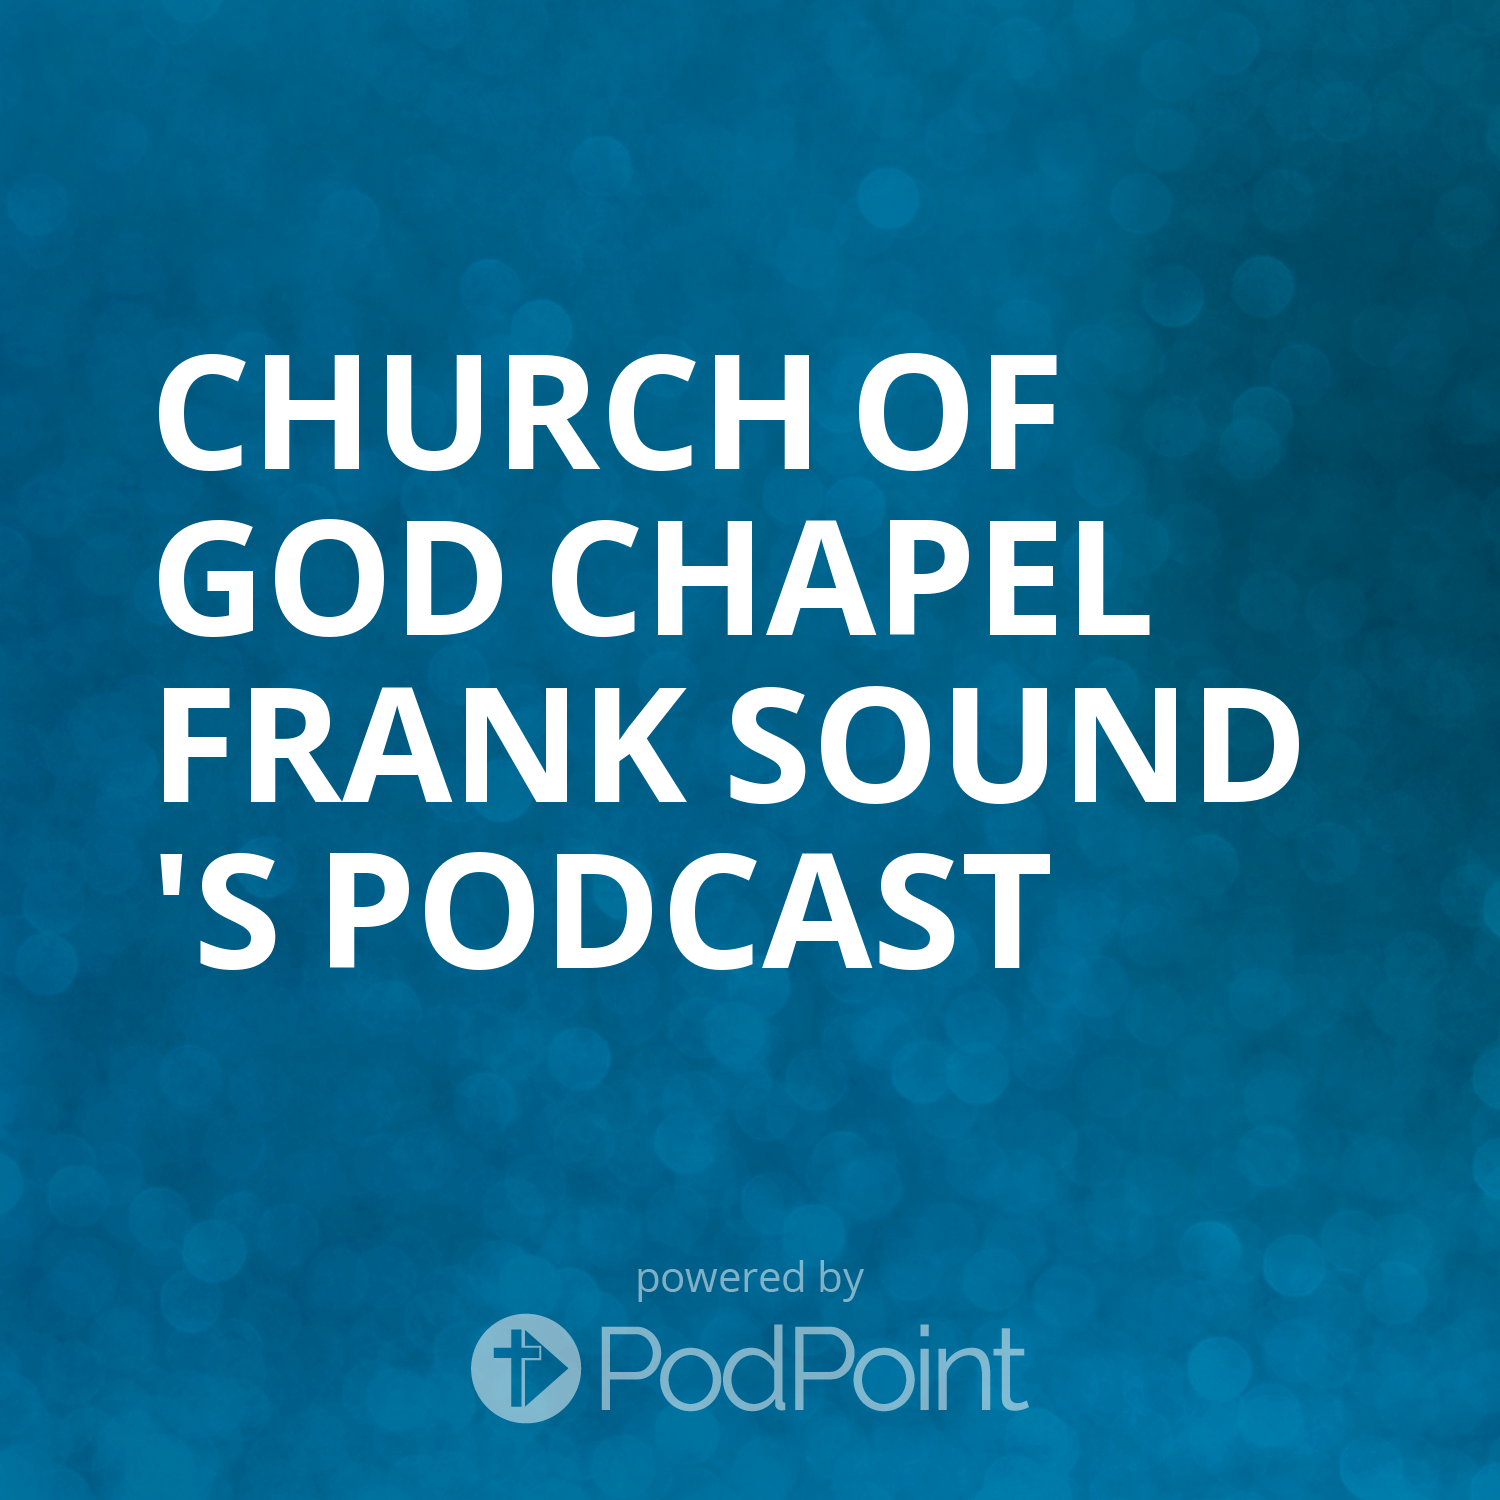 Church Of God Chapel Frank Sound 's Podcast